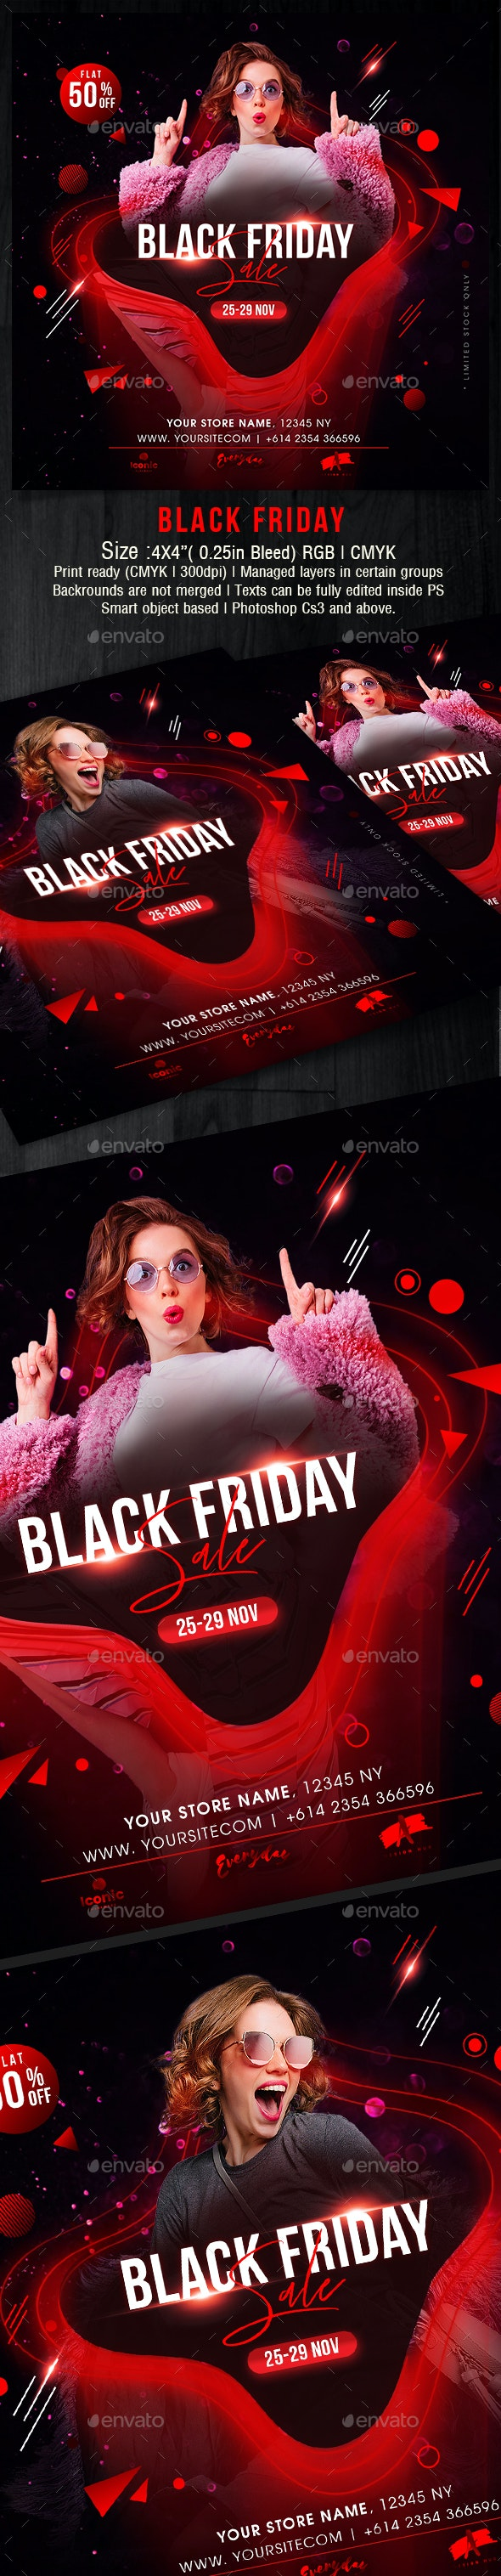 Black Friday - Holidays Events